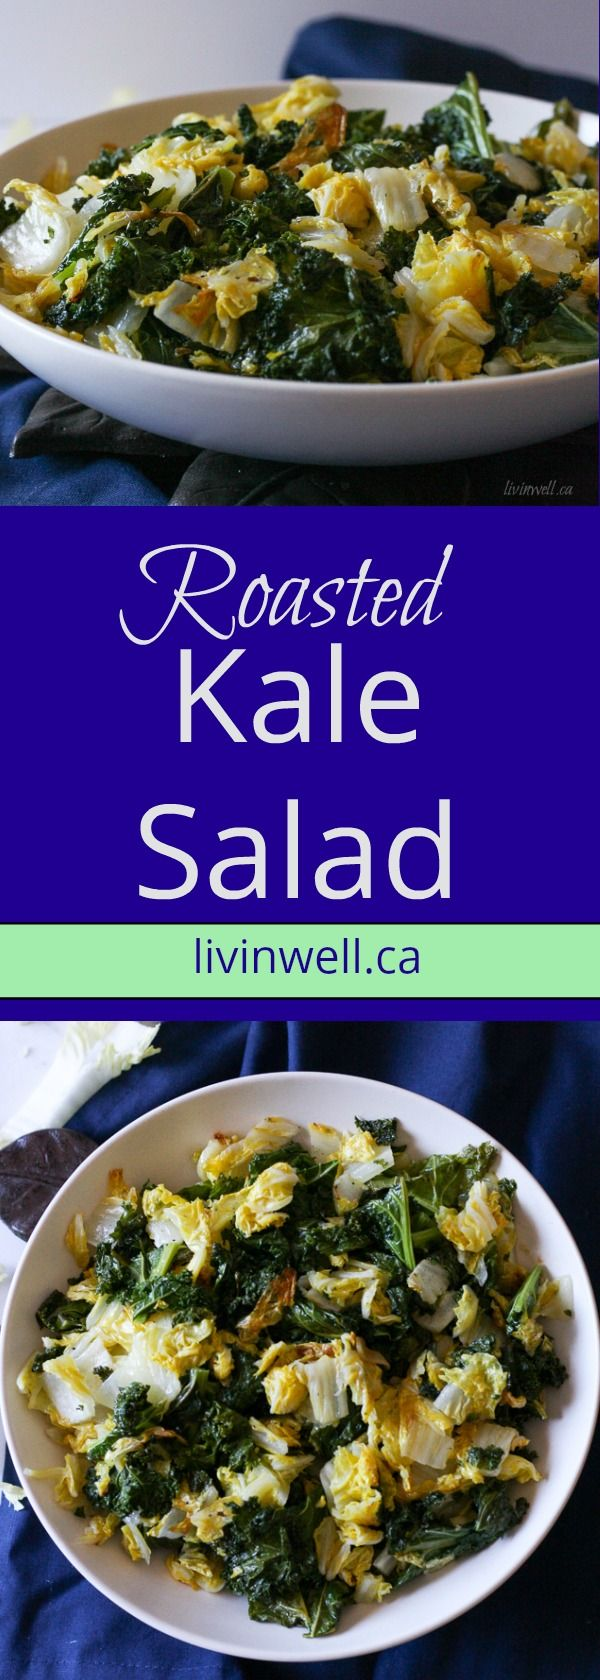 This roasted kale and napa cabbage recipe is healthy and light side dish to chicken or fish. The mild peppery flavour of the napa cabbage is a great compliment to the smokey and buttery flavour from the roasted kale and oh those crunchy kale bits..... yum! #kale #healthy side dishes #vegetables